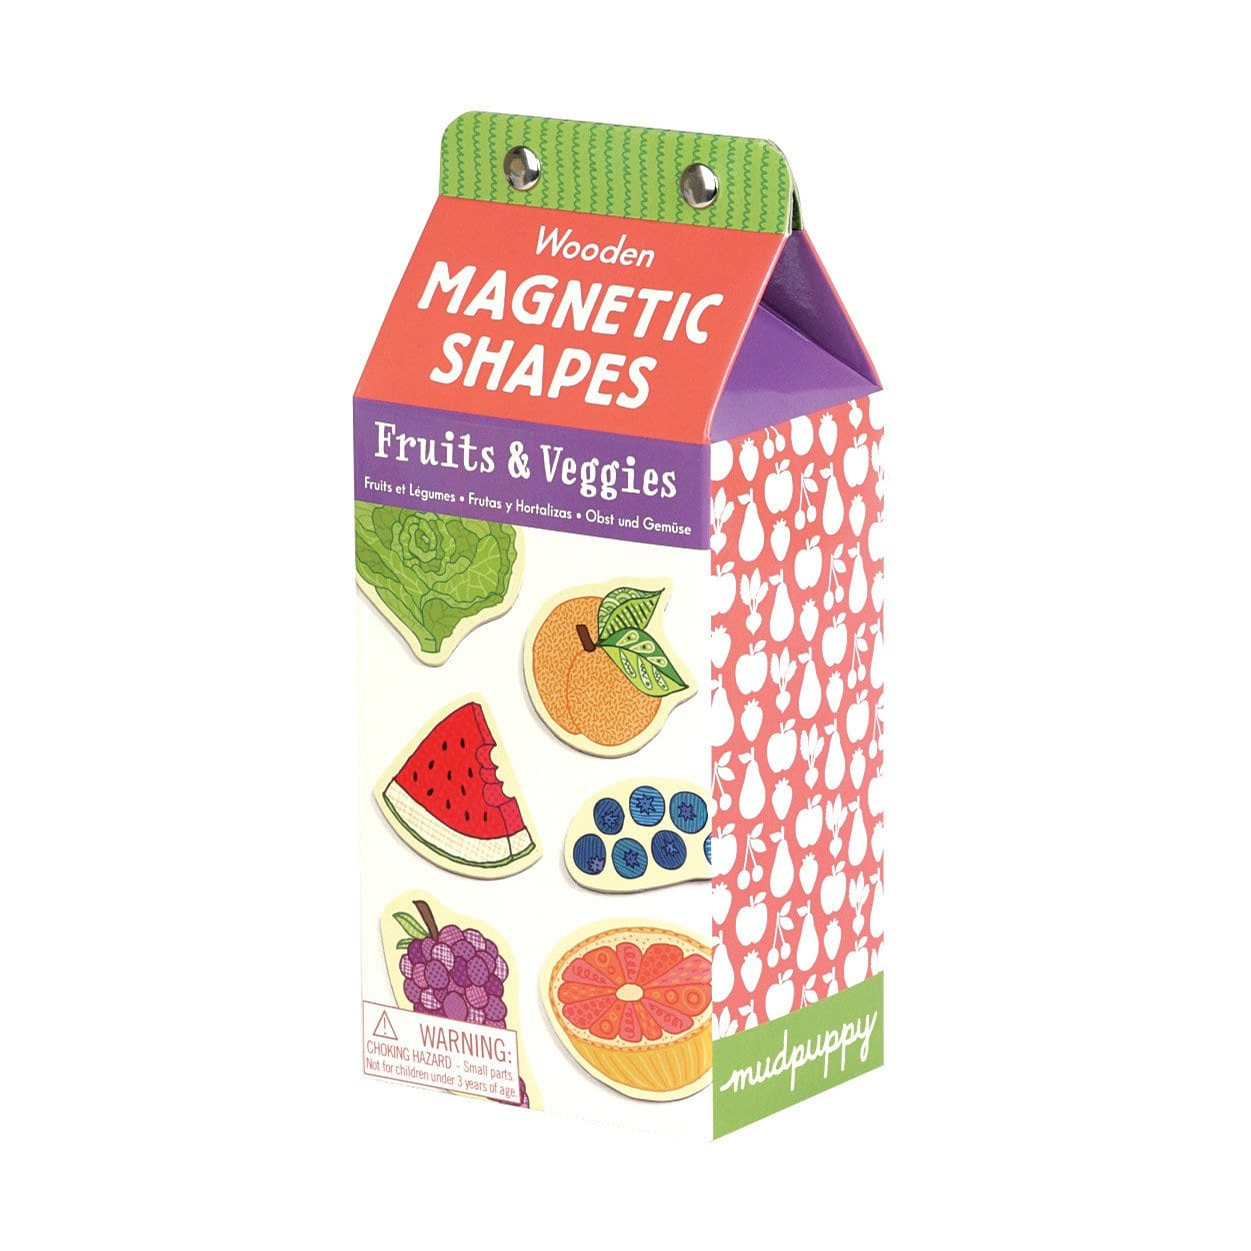 Mudpuppy Press Wooden Magnetic Set (Fruit and Veggies)